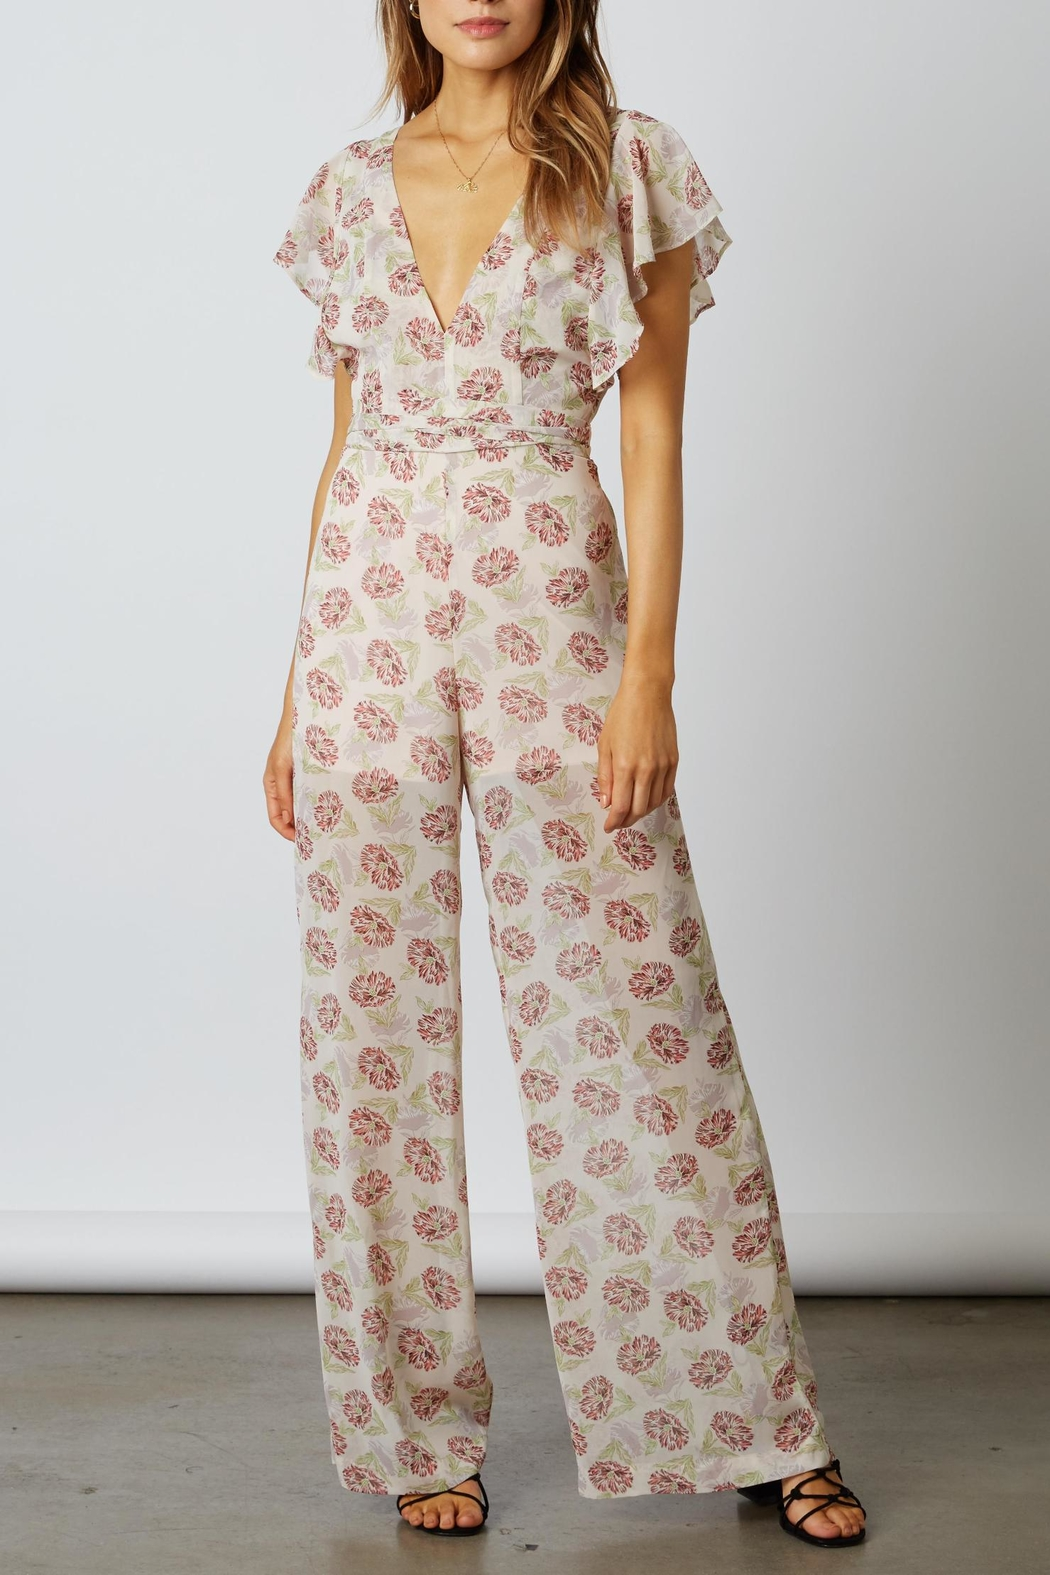 Cotton Candy LA Floral Chiffon Jumpsuit - Main Image